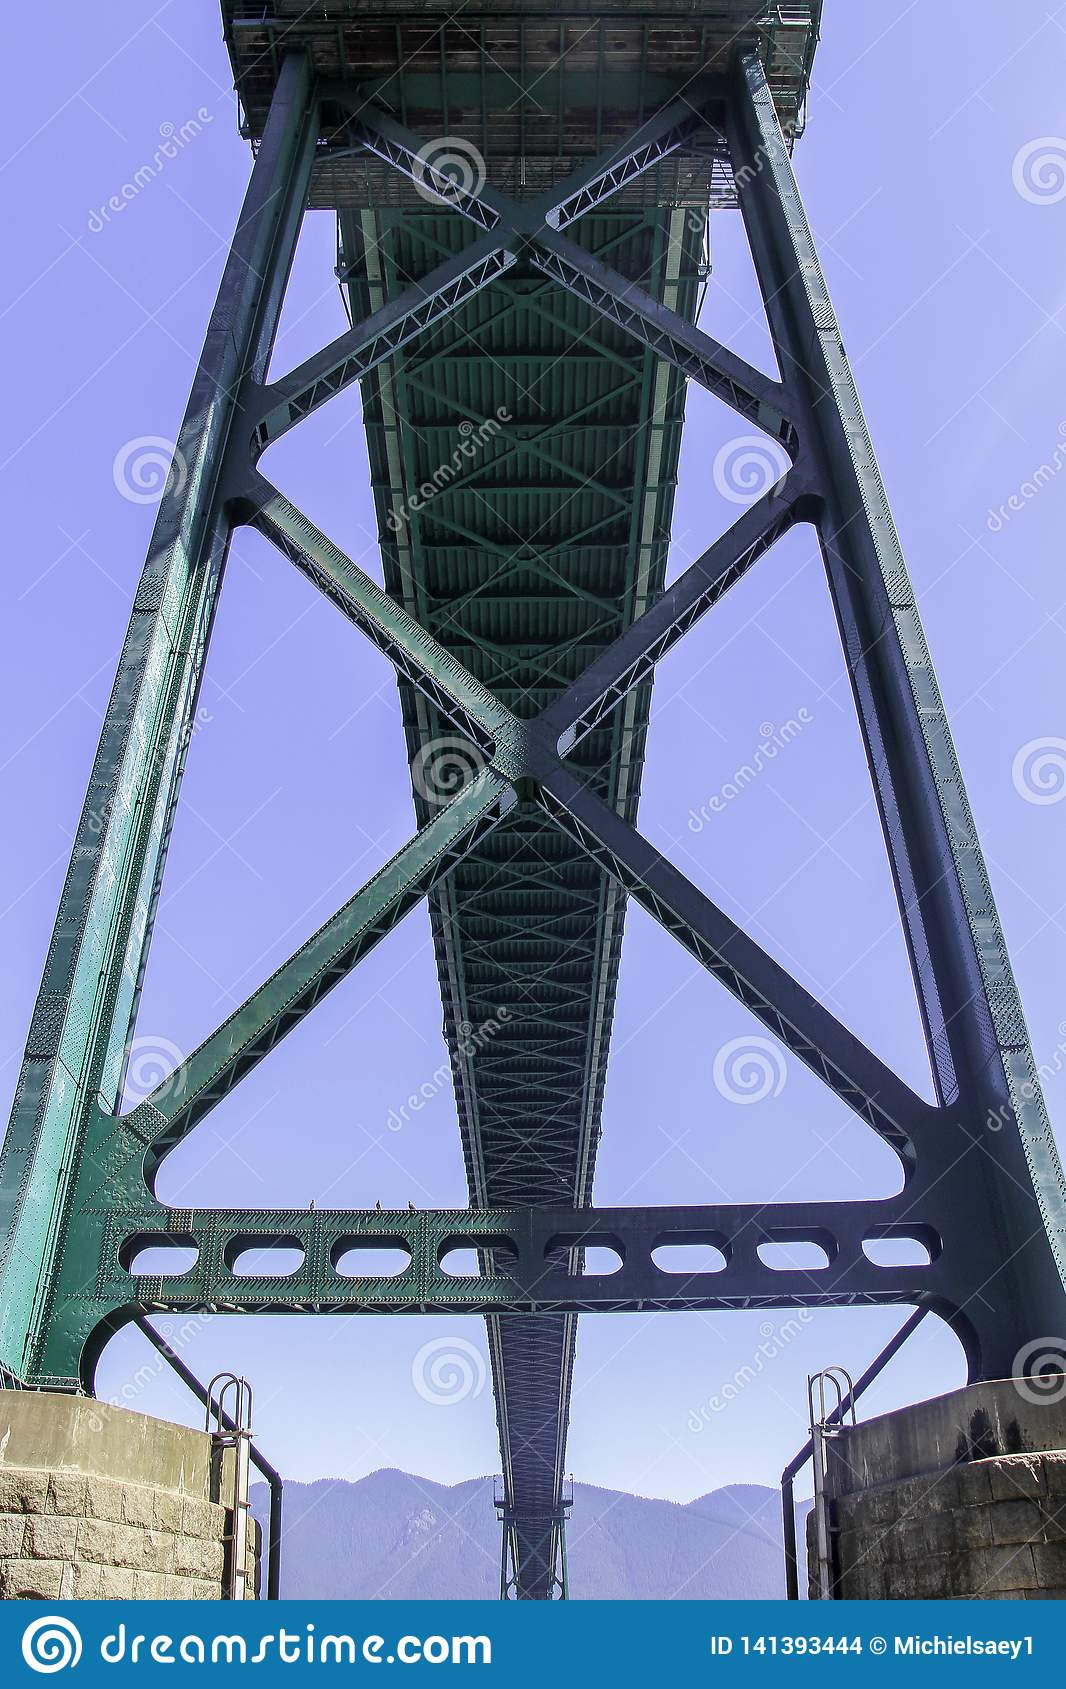 Lions Gate Bridge from the buttom Vancouver